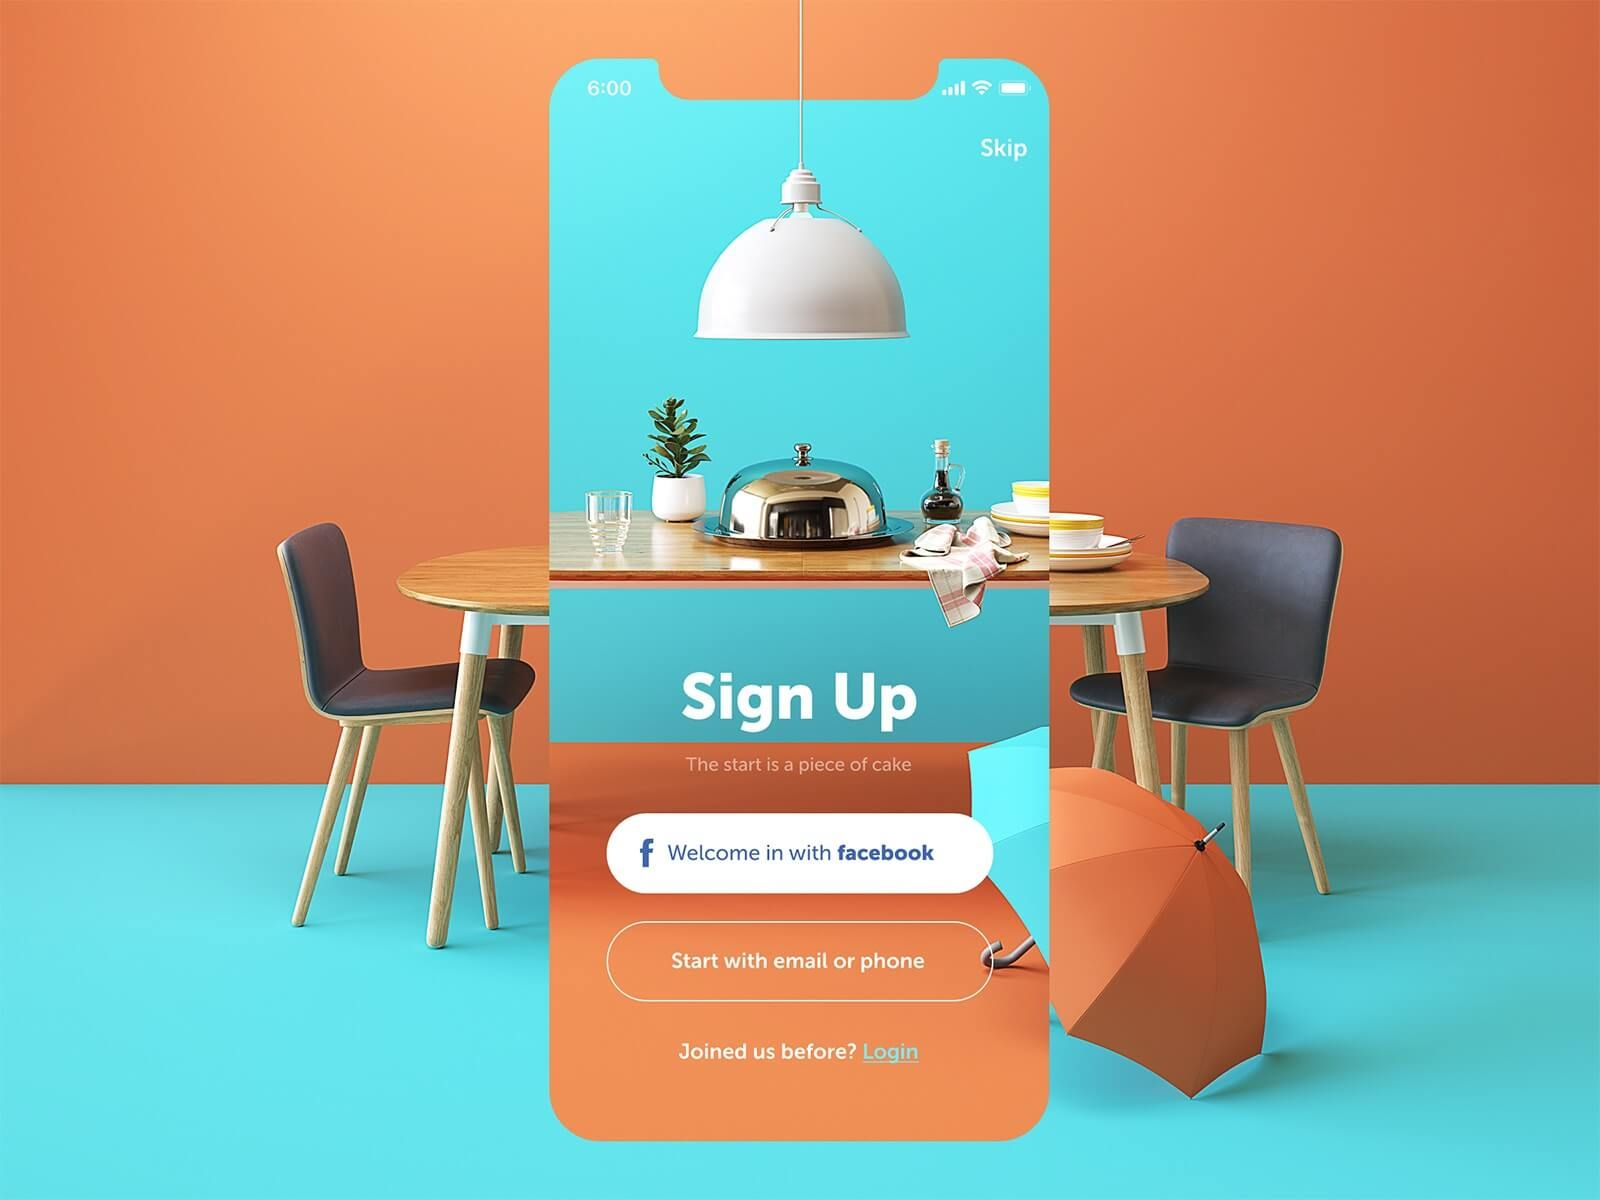 Review of Popular Interface Design Trends in 2018